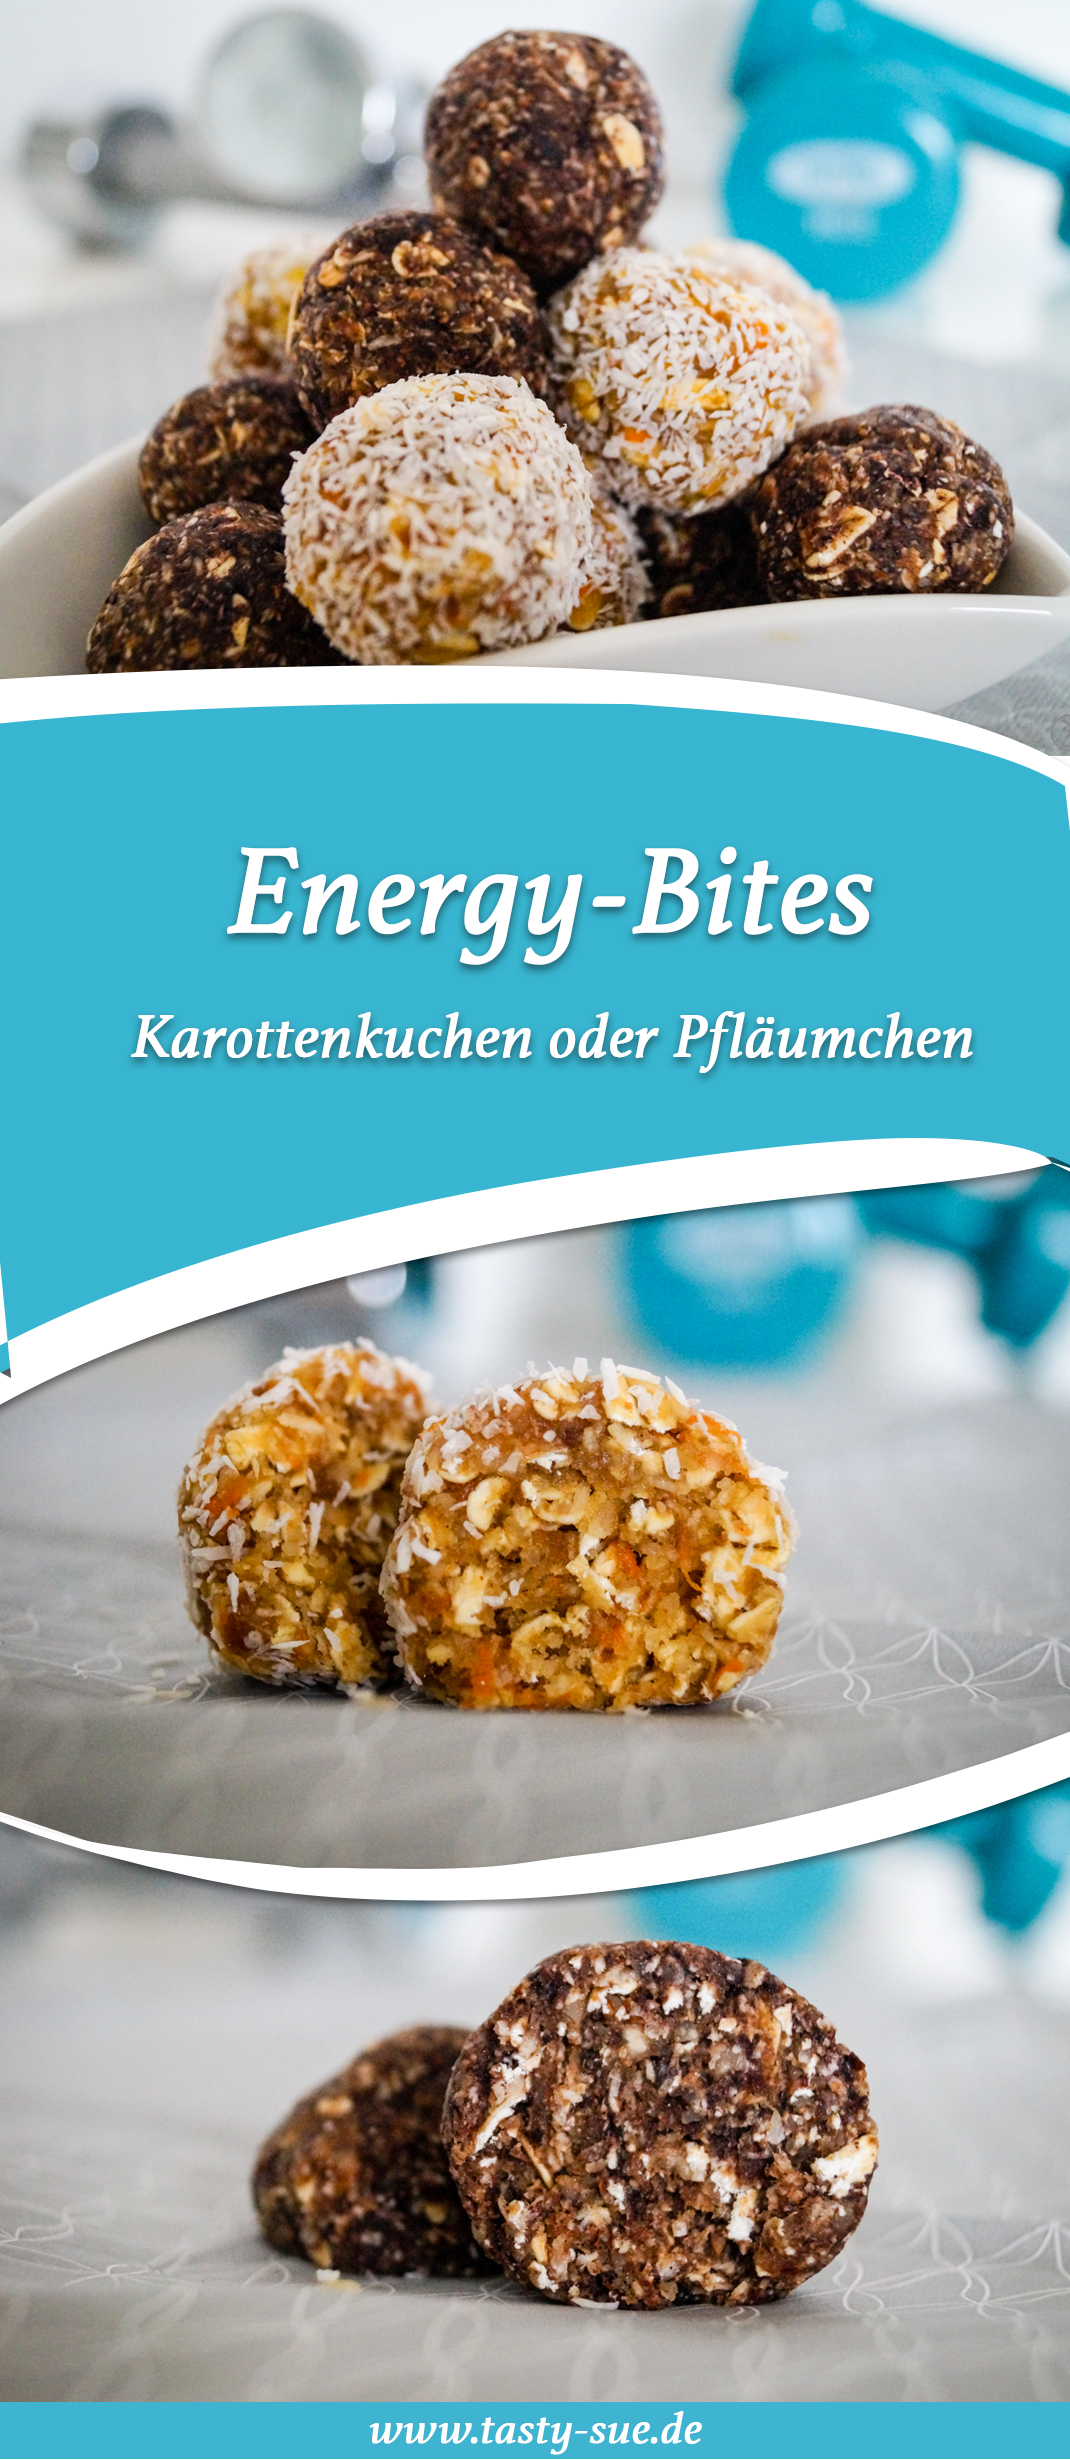 energy bites schnelle power f r zwischendurch tasty sue rezepte pinterest rezepte. Black Bedroom Furniture Sets. Home Design Ideas